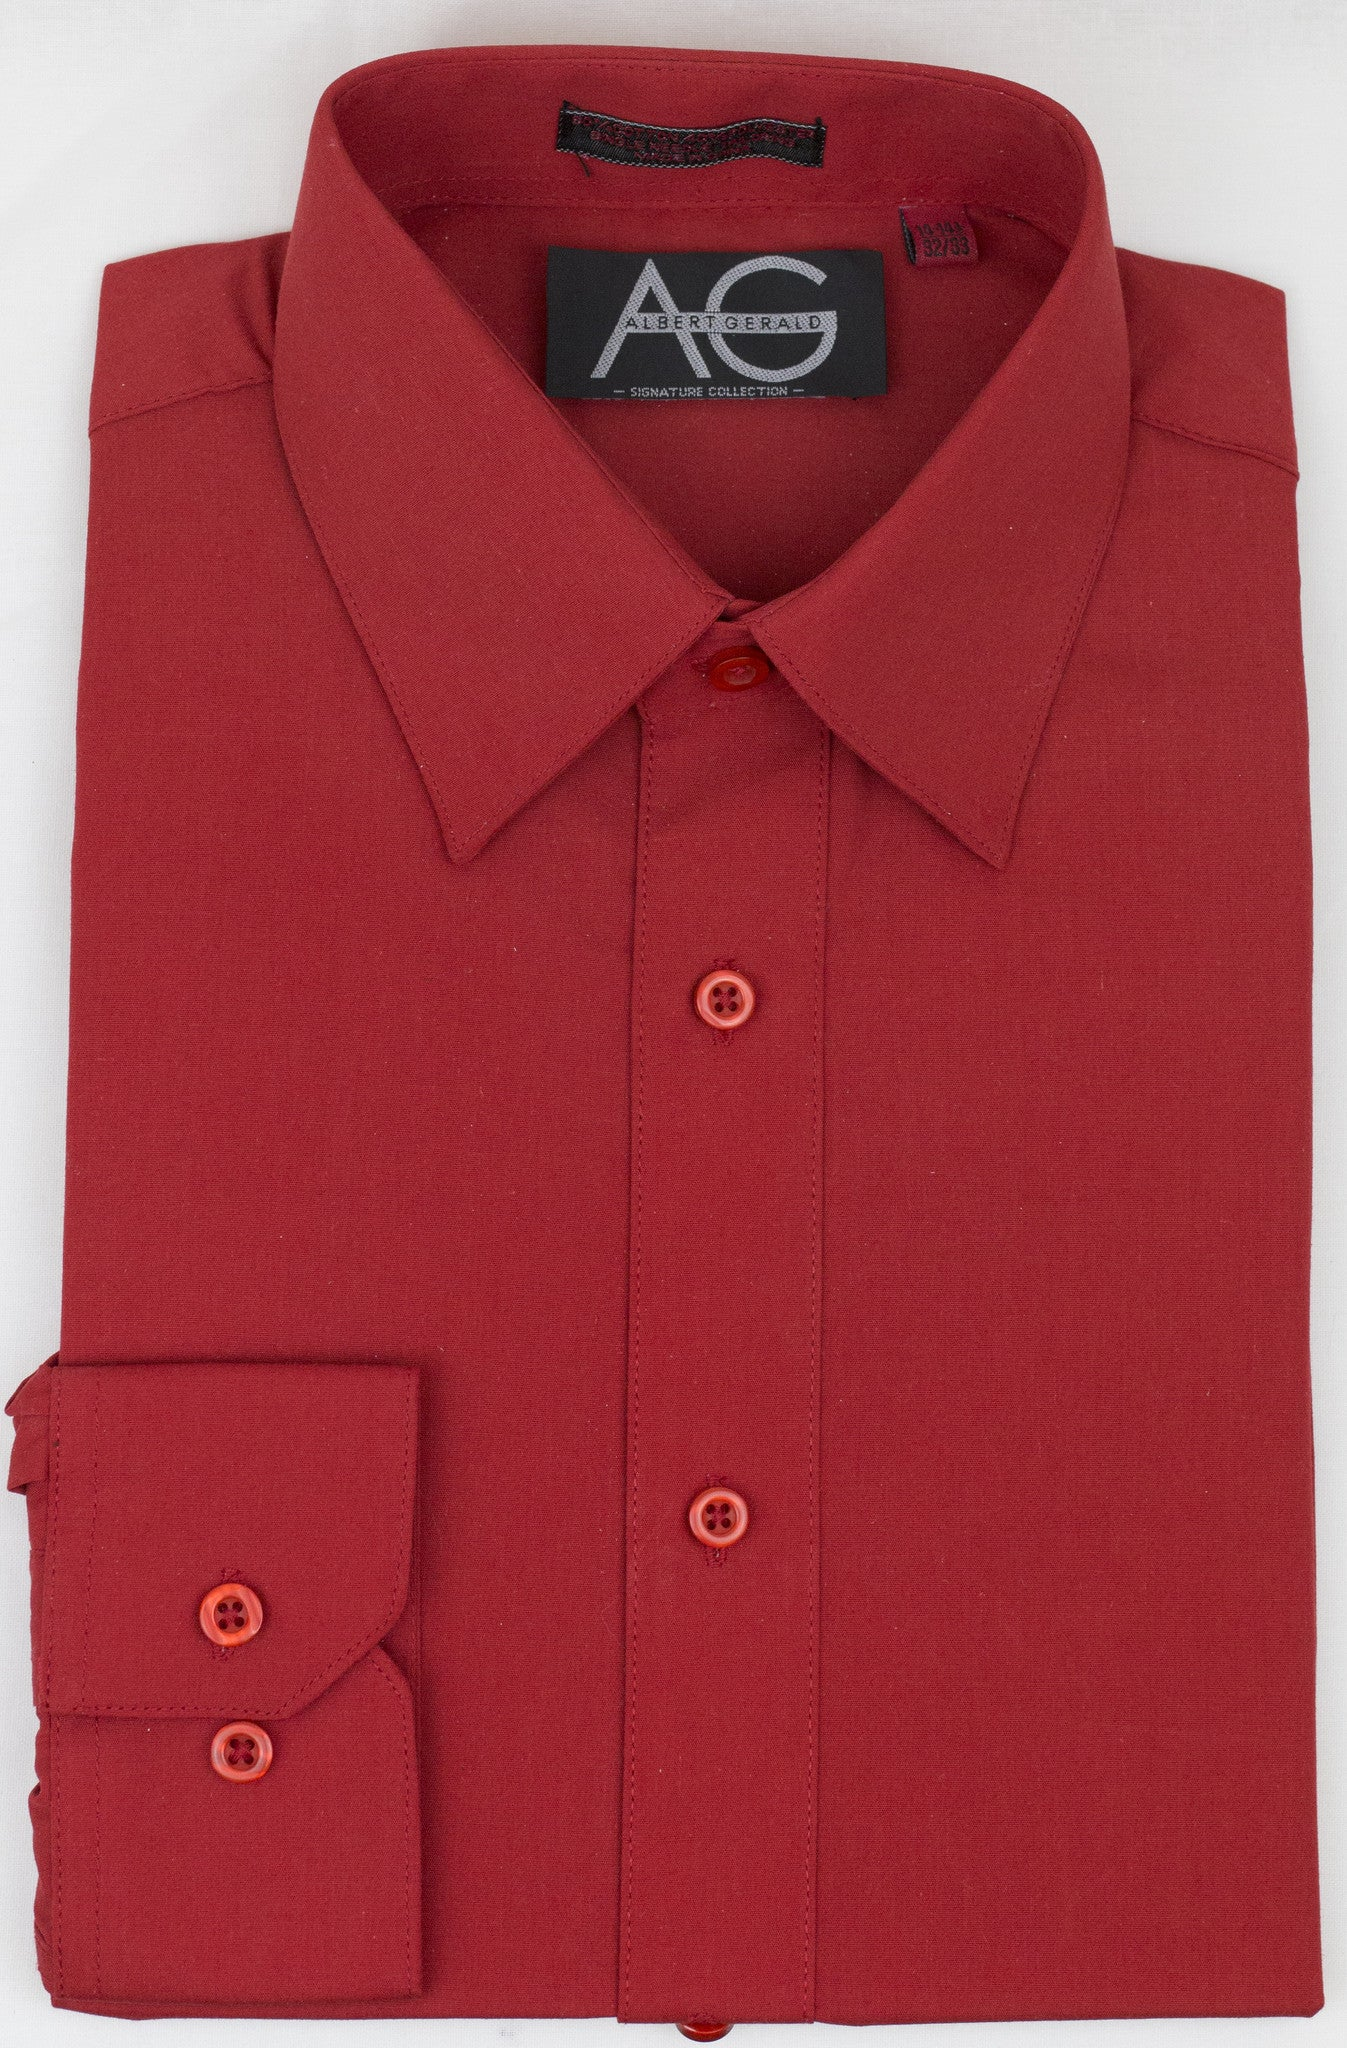 Dress Shirt in Red